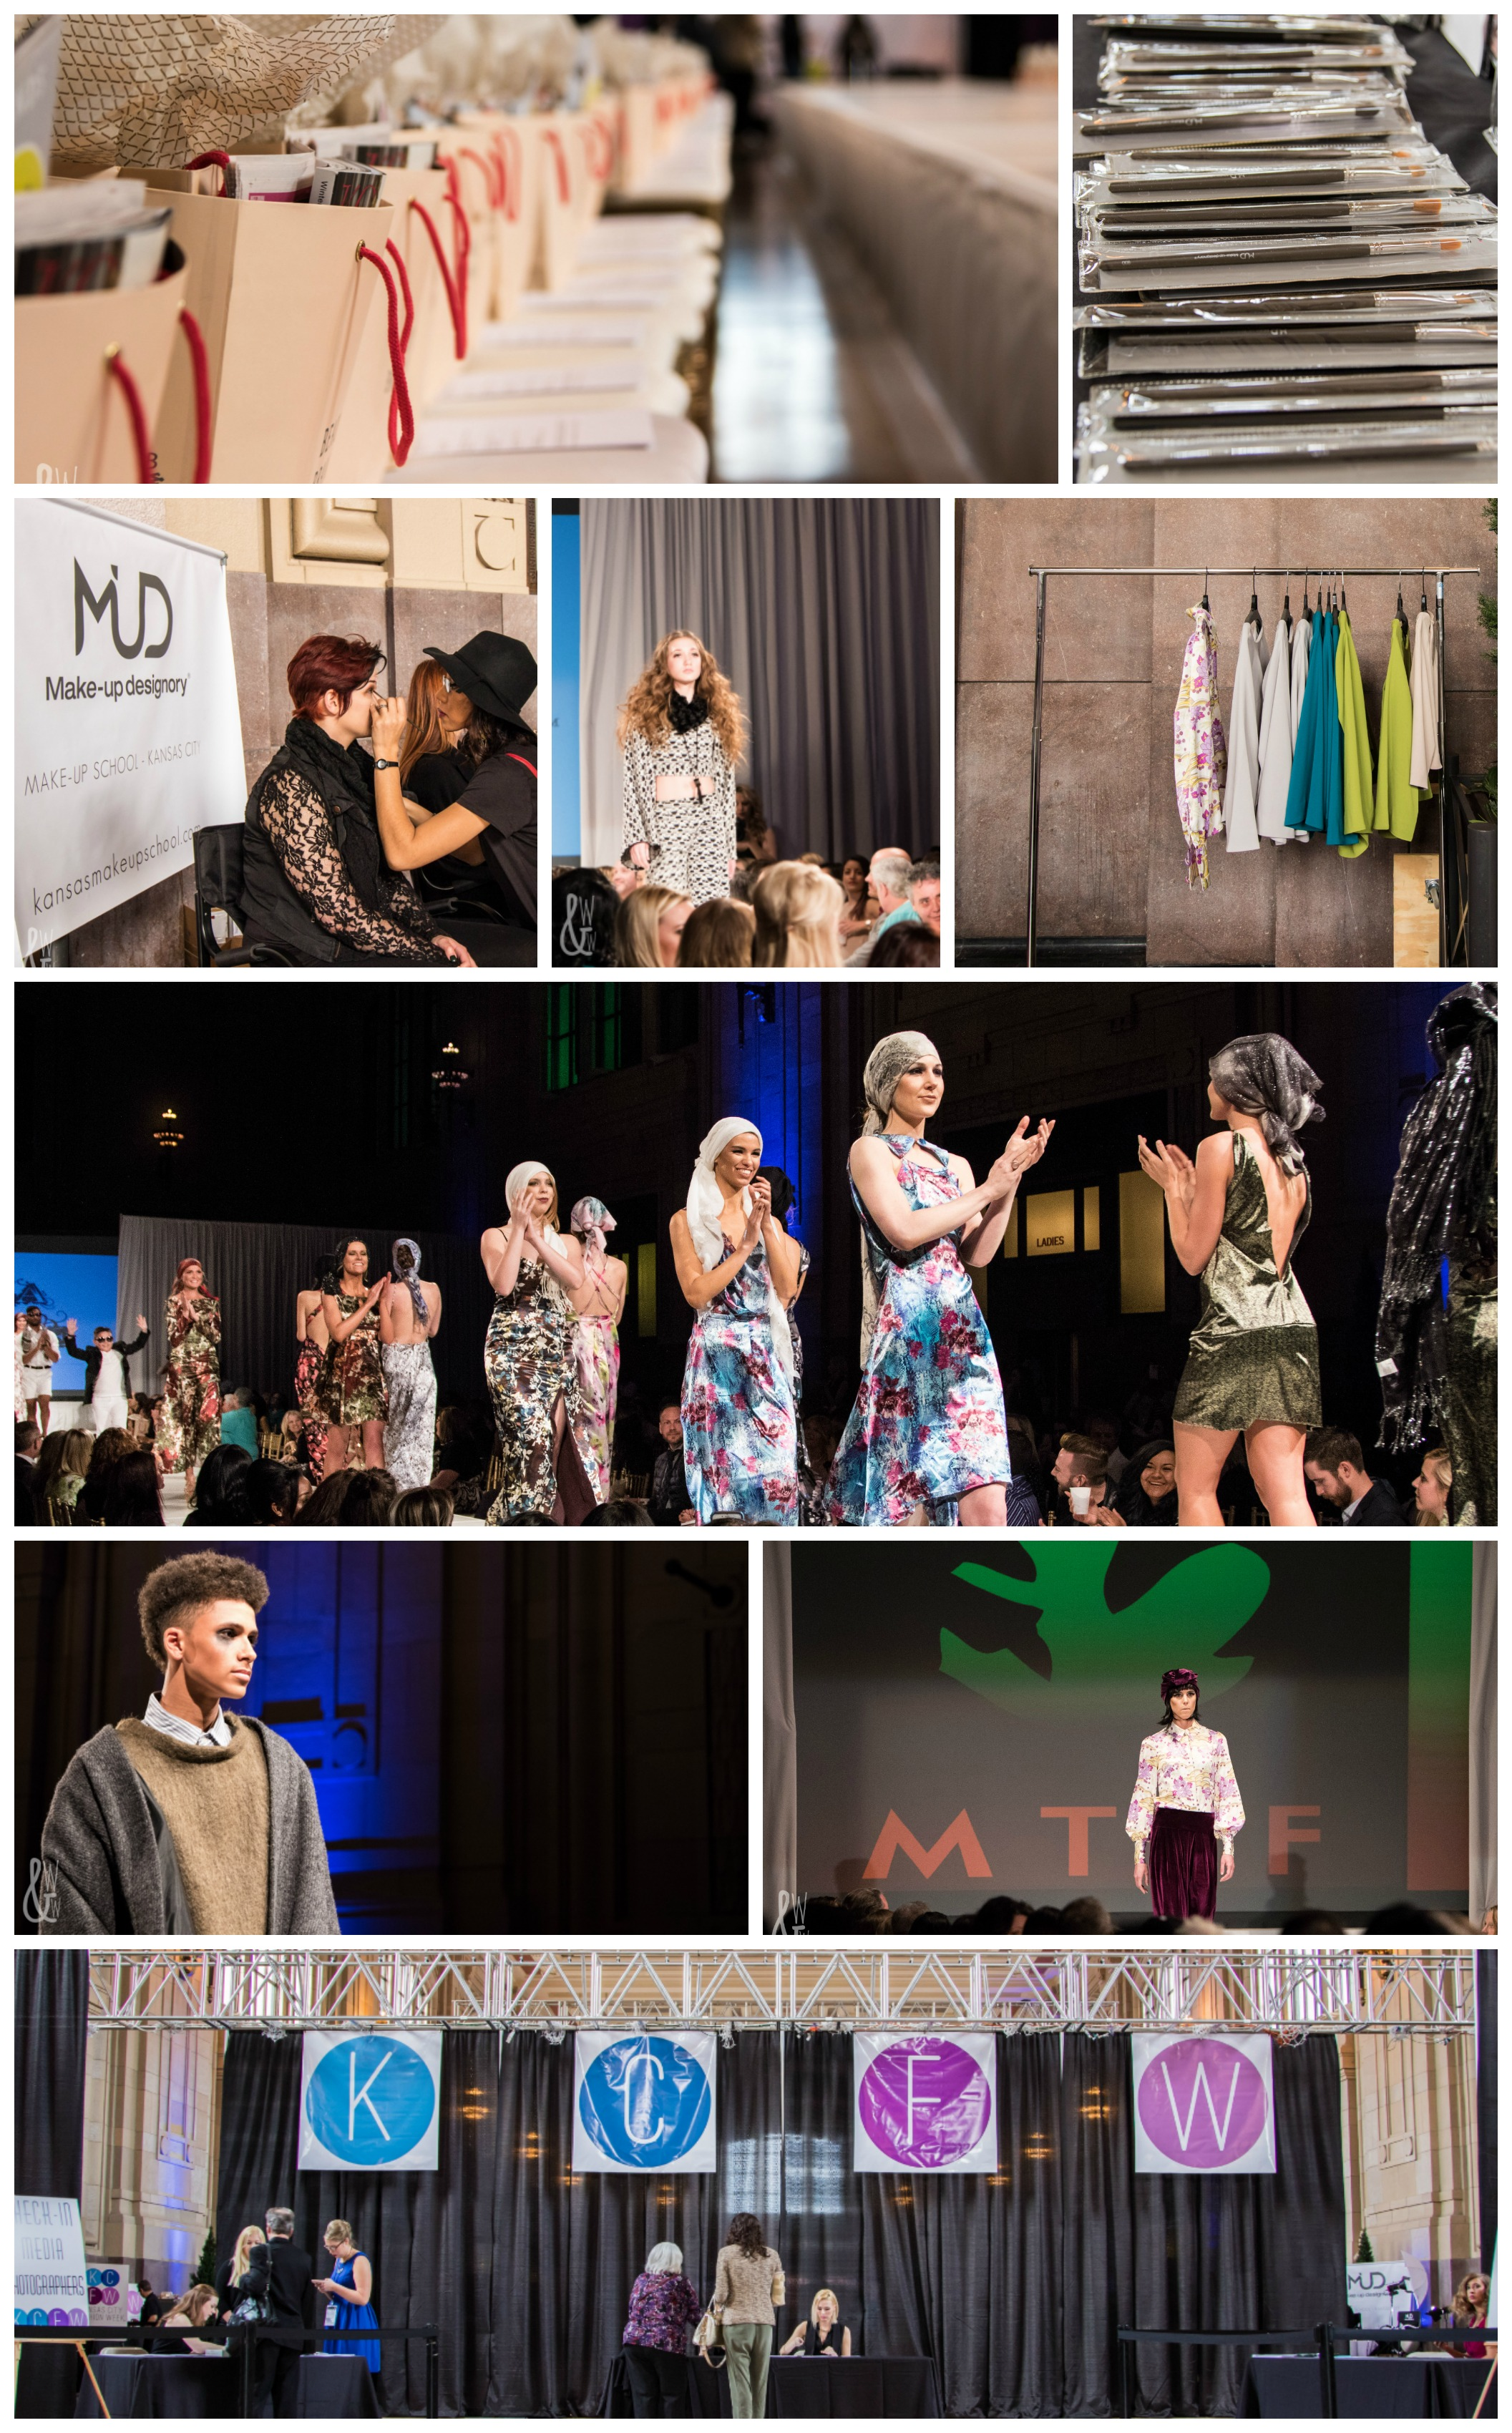 KCFW_Collage